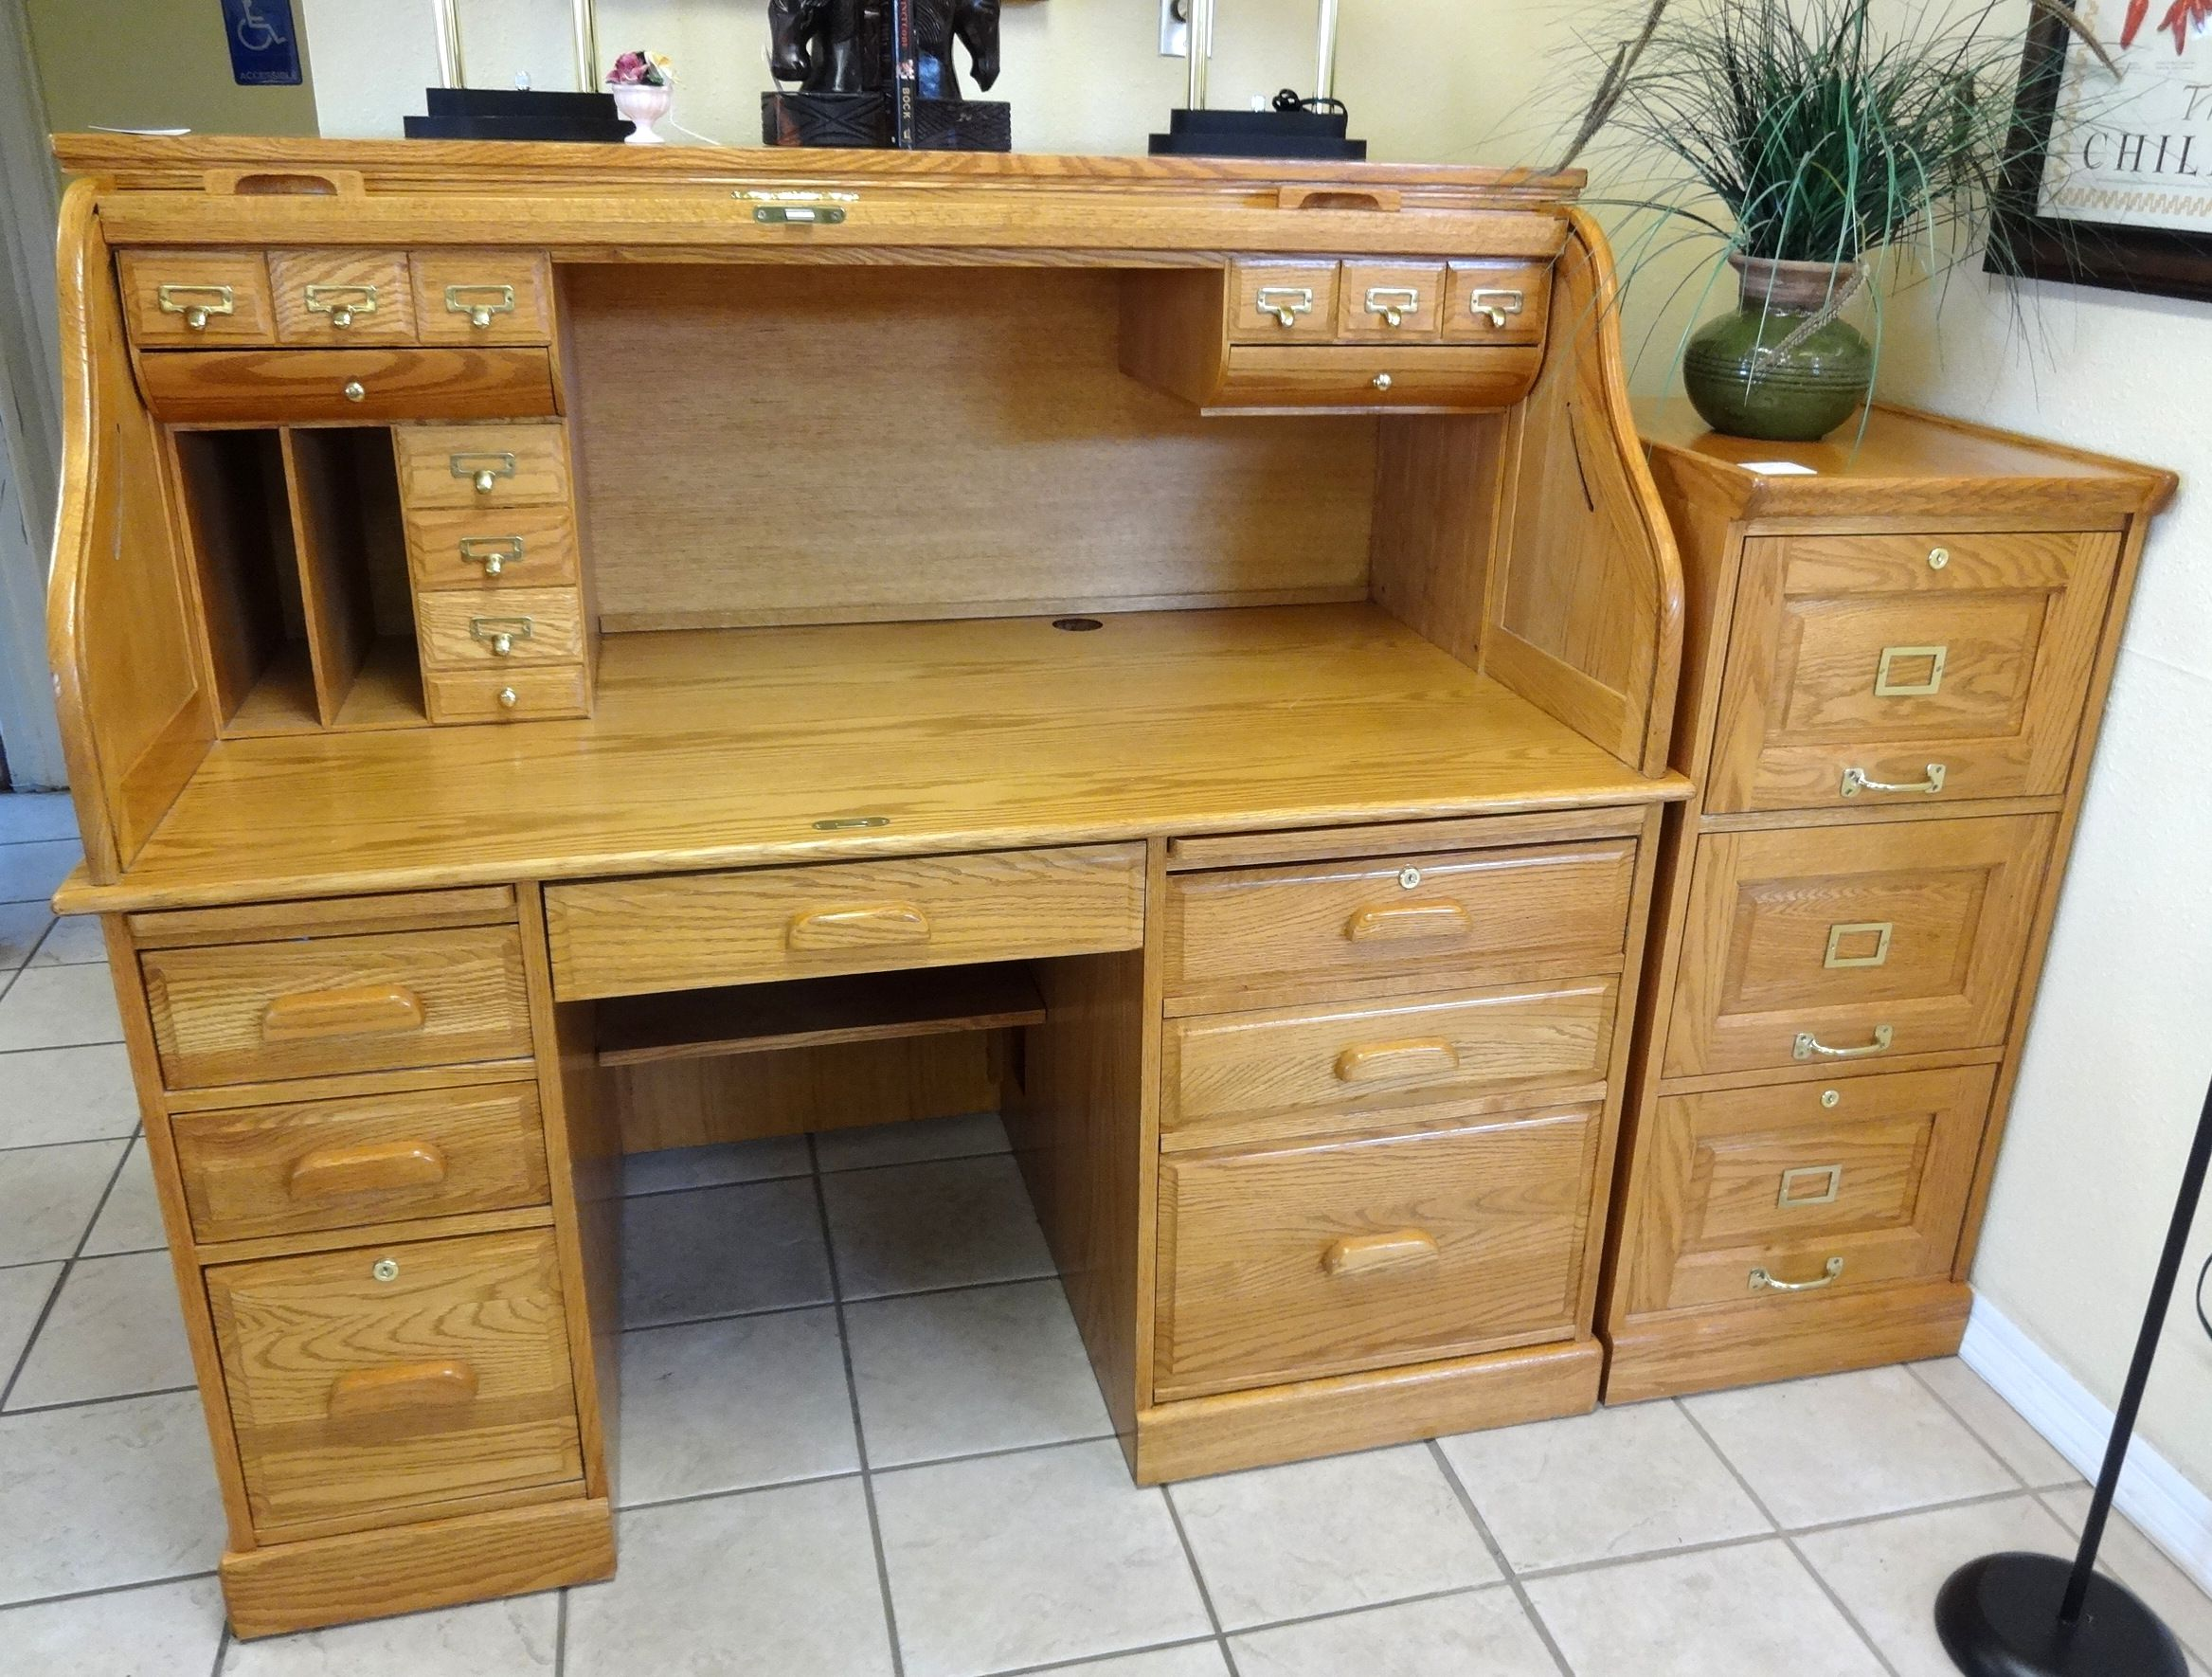 3066 Huge Roll Top Computer Desk By Winners Only Inc Tons Of Storage Including A Computer Tower Cabinet And Pull Out Keyboard Roll Top Desk Top Computer Desk